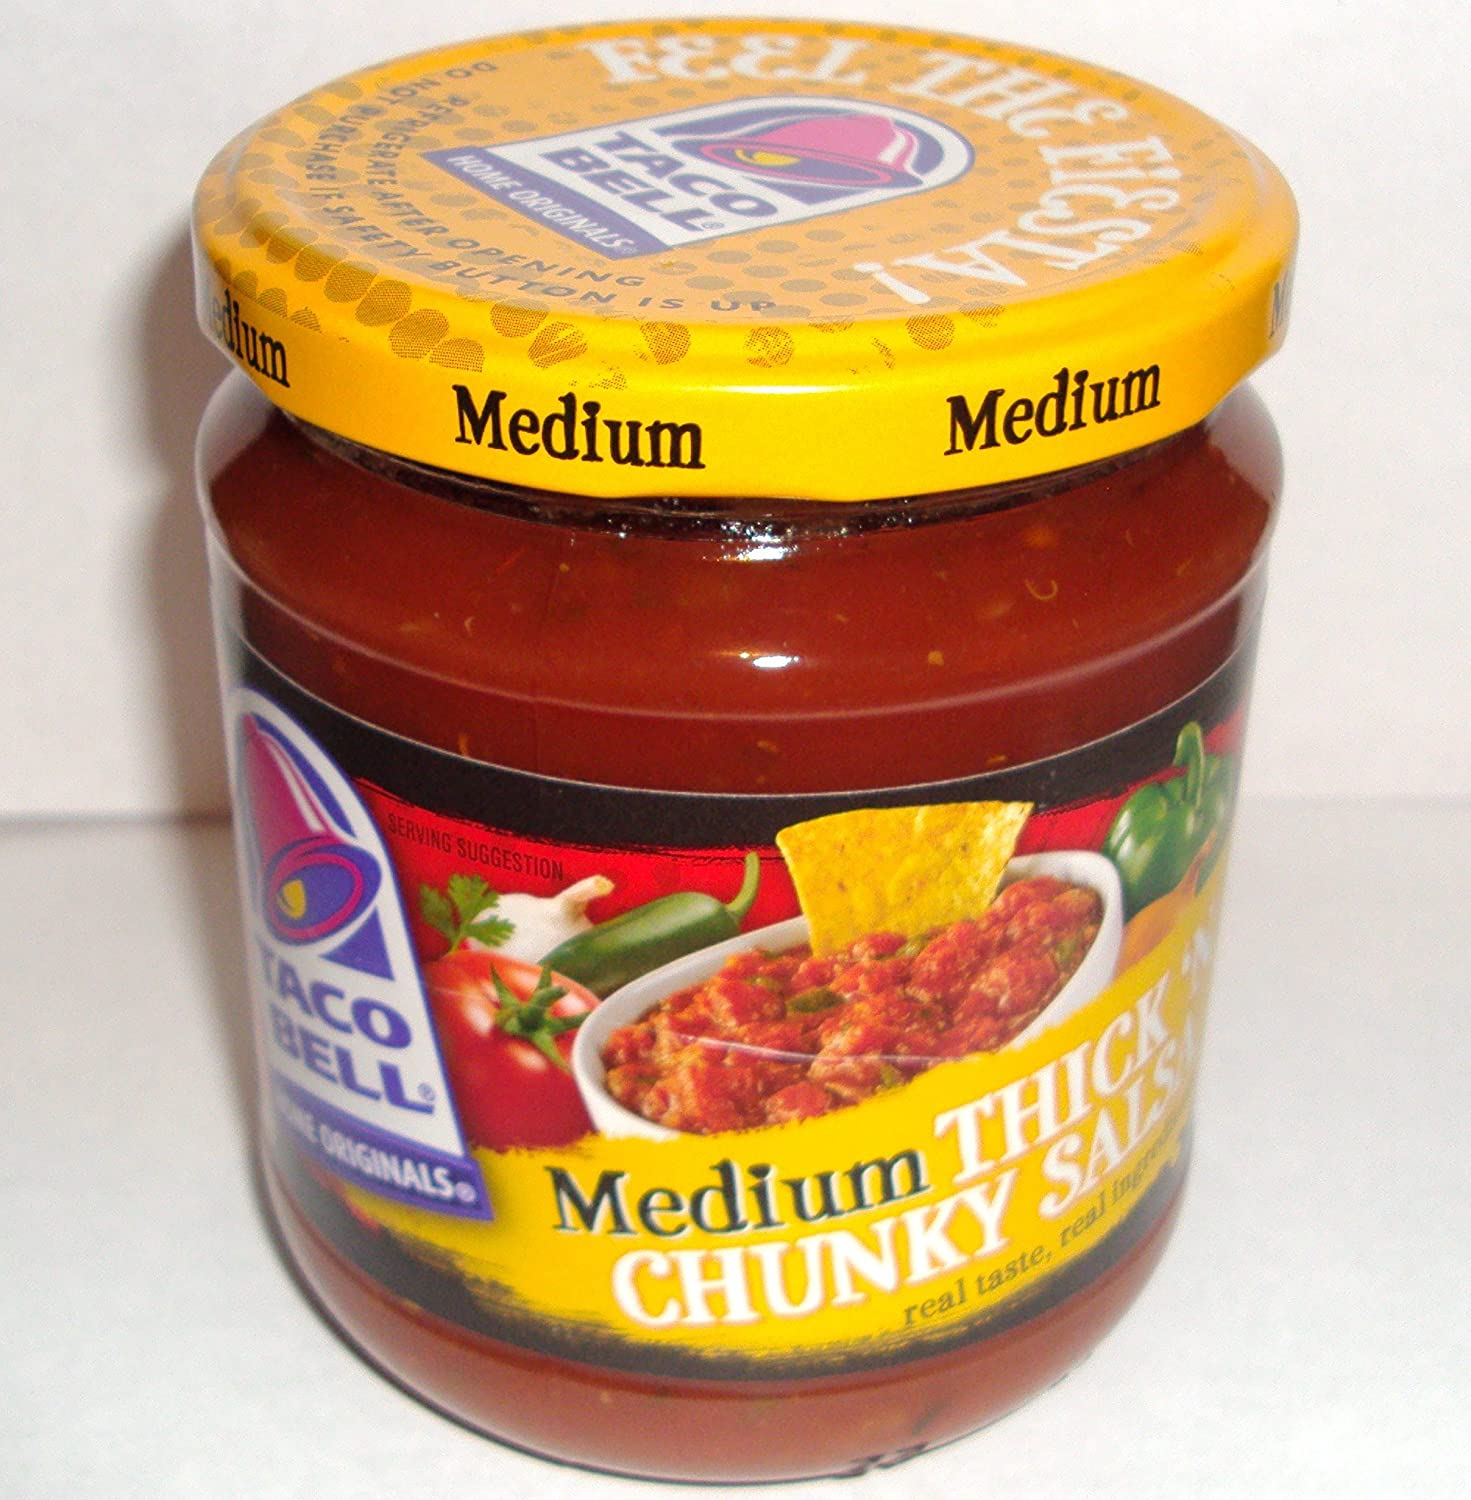 Amazon.com: Taco Bell Thickn Chunky Medium Salsa, 16 oz. Jar (Pack of 6)